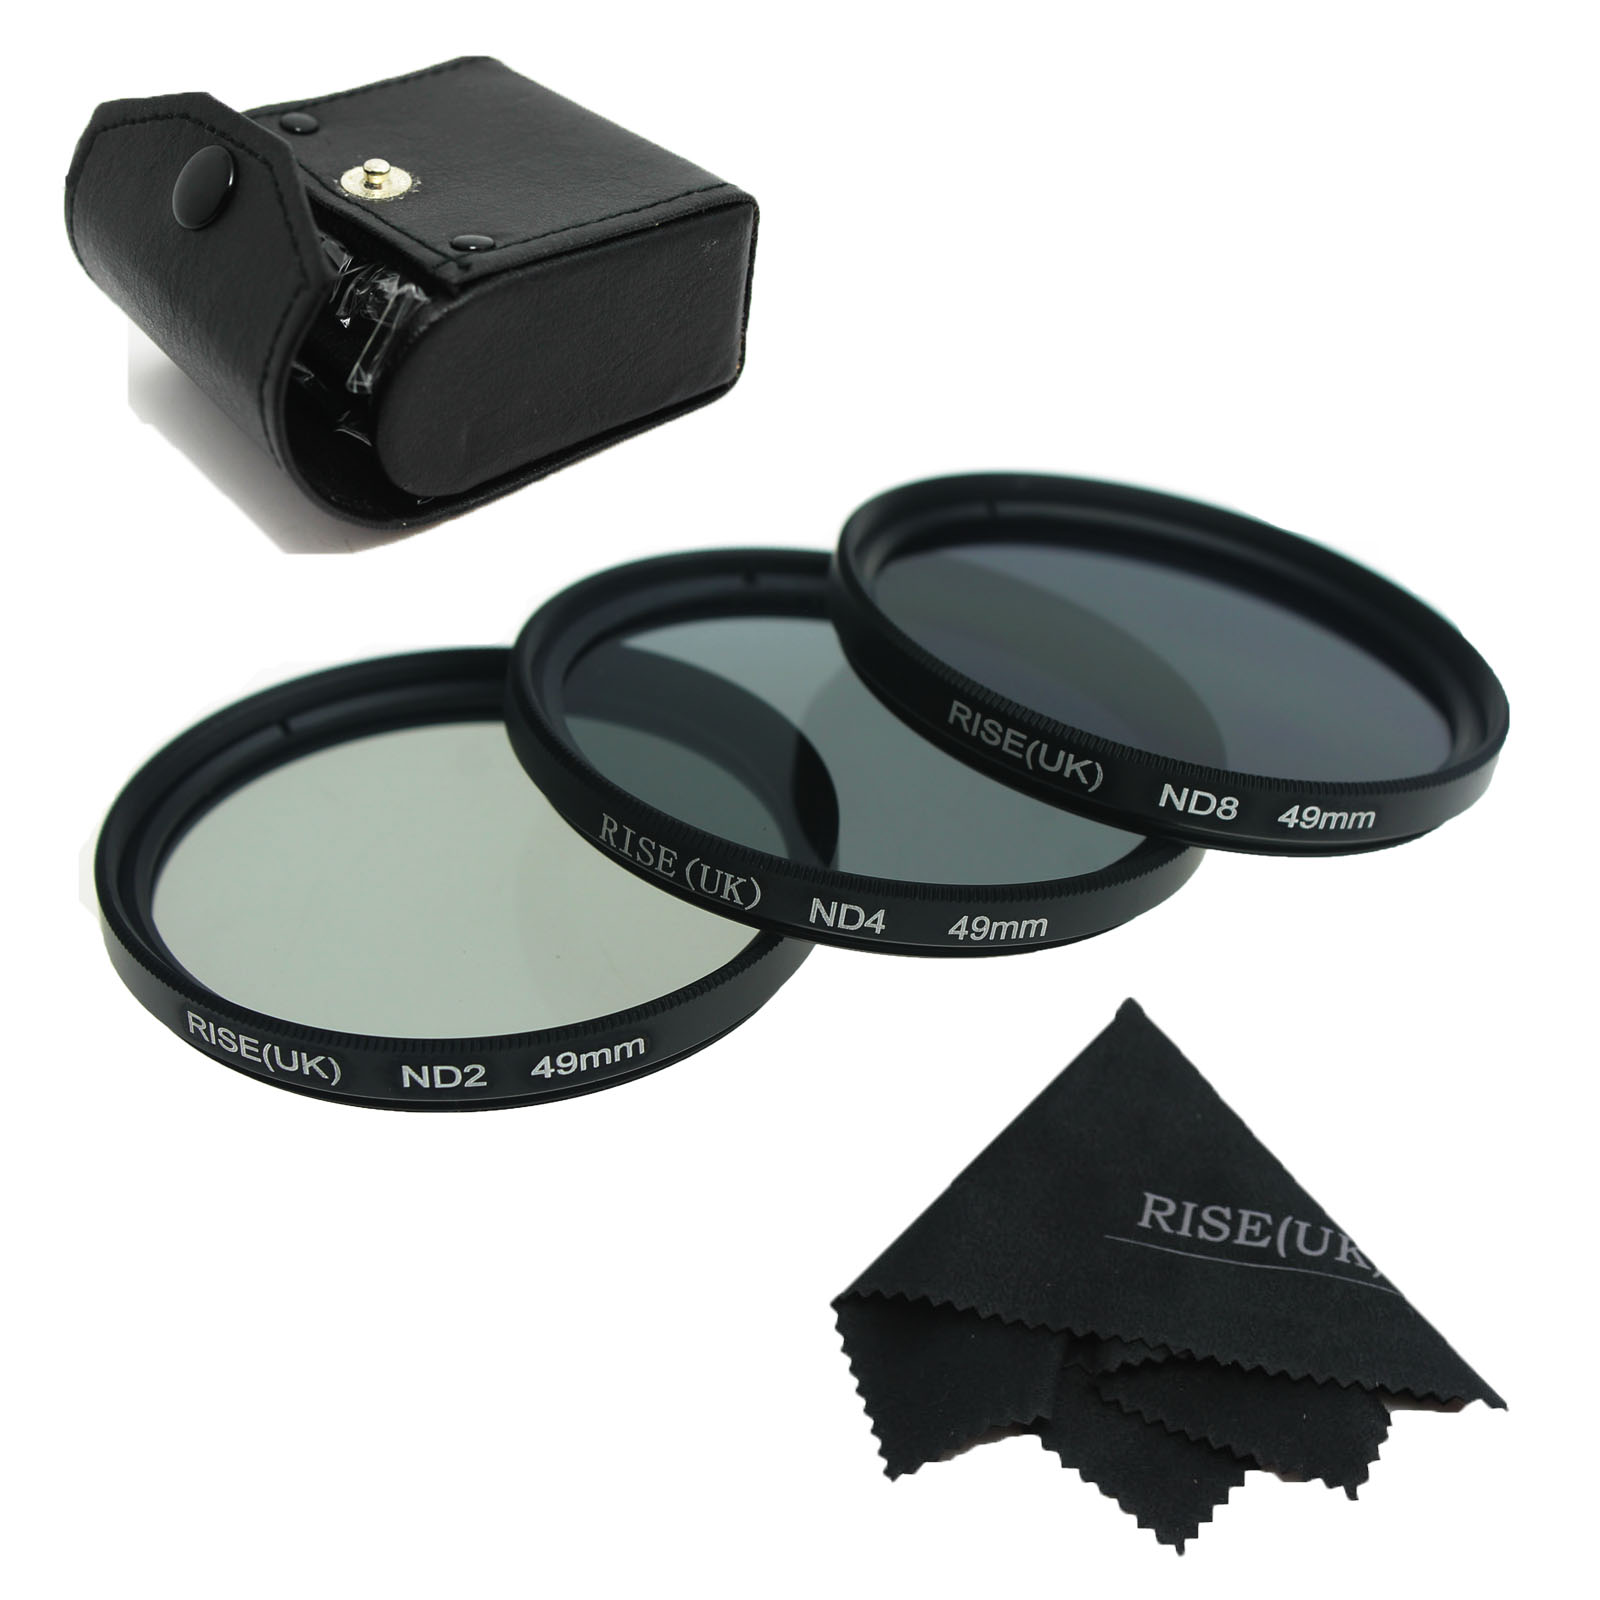 RISE (UK) 49mm 52mm 55mm 58mm 62mm 67mm 72mm 77mm Filtro a Densità Neutra Lente set Kit ND2 ND4 ND8 ND 2 4 8